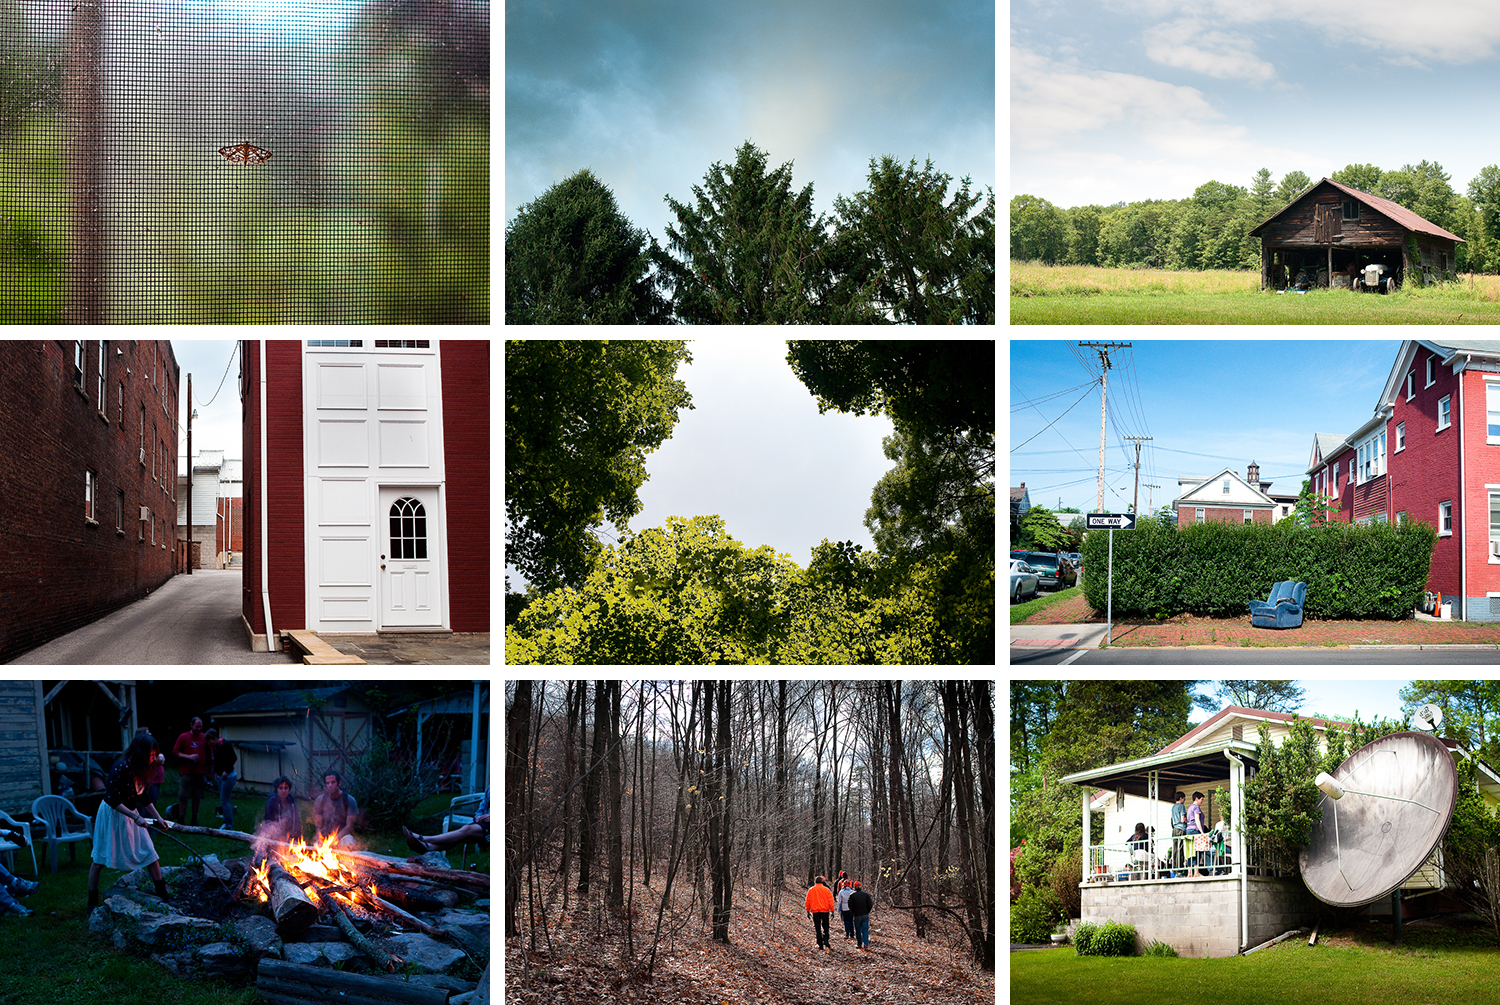 """""""Pennsylvania"""" -   (Row 1)  Moth on Screen  , Huntingdon;  Spruces at the Side of the House  , Franklin Township;  Car in the Shed,  Huntingdon; (Row 2)  Alley and White Door  , Huntingdon;  Canopy  , Huntingdon;  Recliner,  Huntingdon; (Row 3)  Stoked  , Huntingdon;  Every Fall  , Huntingdon;  View of Porch and Dead Satellite  , Huntingdon"""